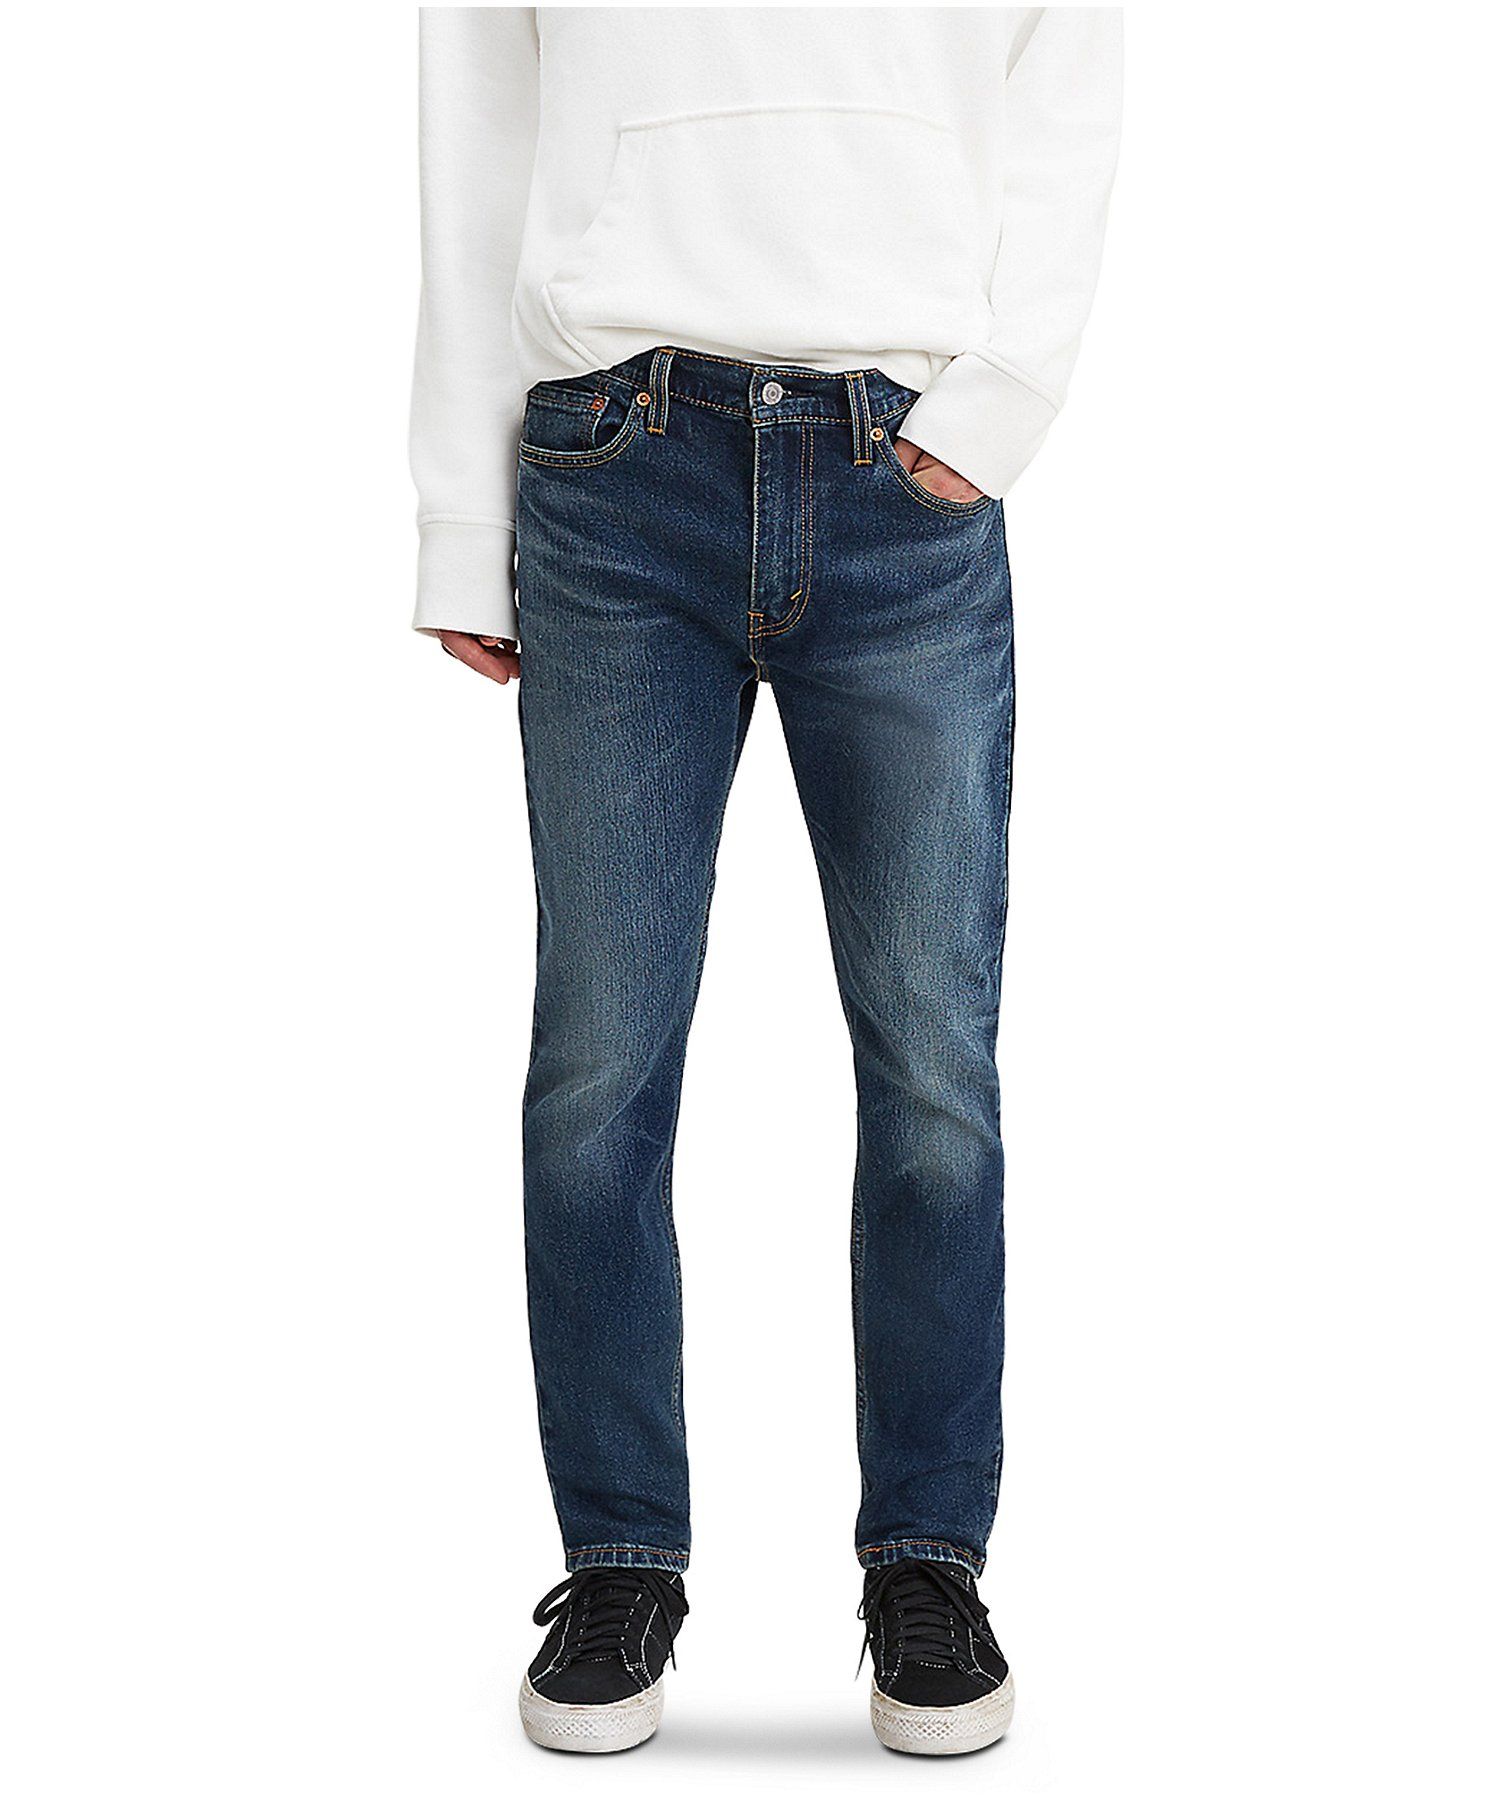 low cost for whole family new york Men's 510 Skinny Fit Golden Rod Jeans